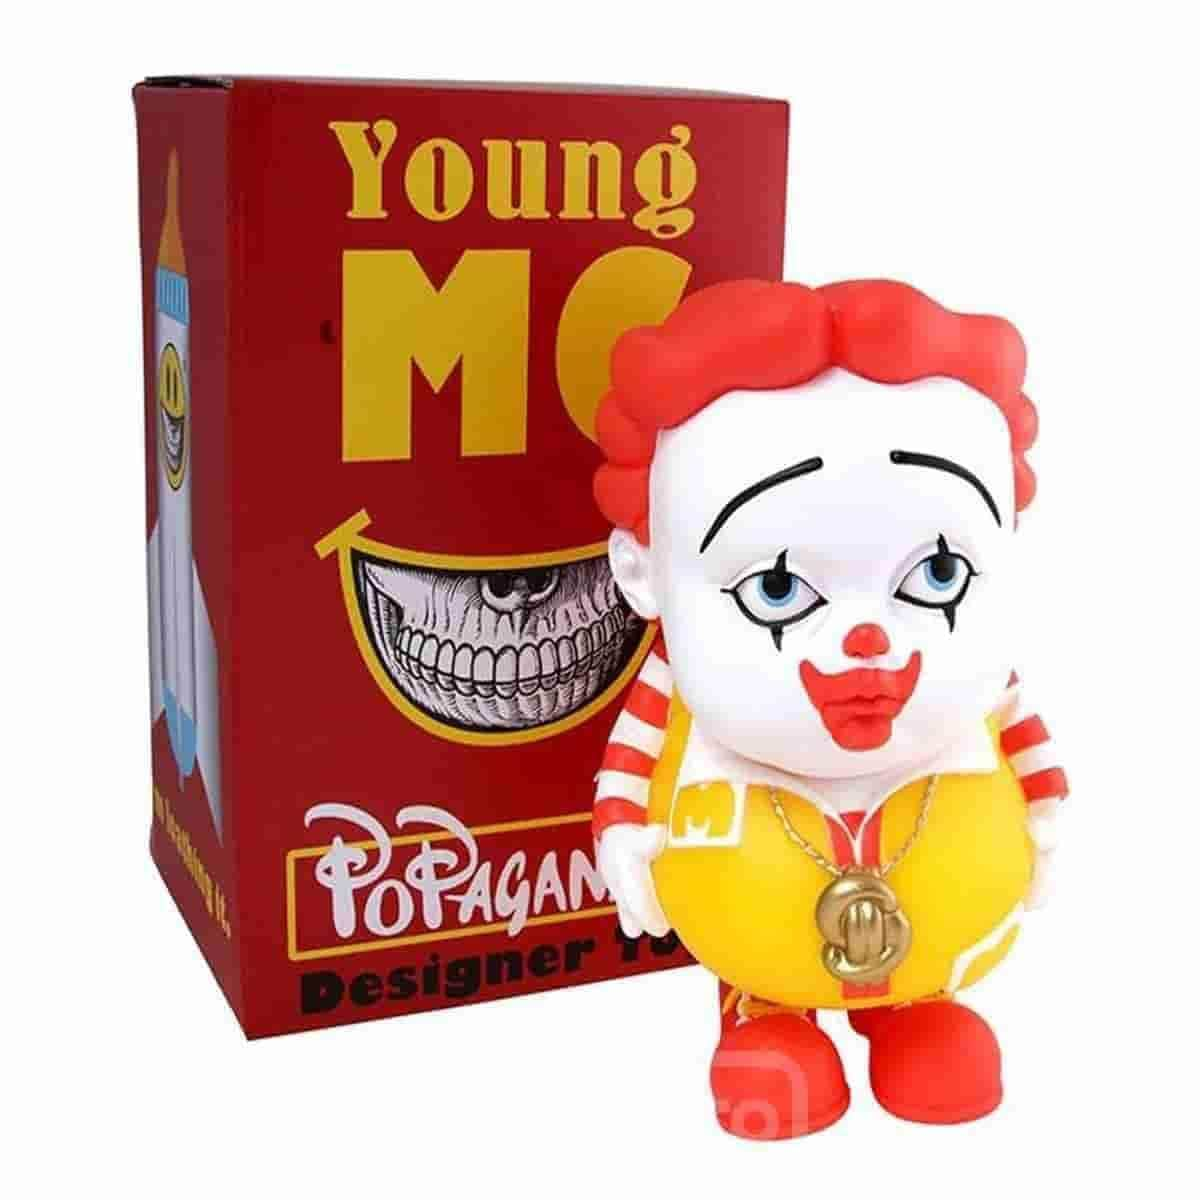 Young MC by Ron English's  Popaganda Designer Toy Medium Figure - IamRetro.com